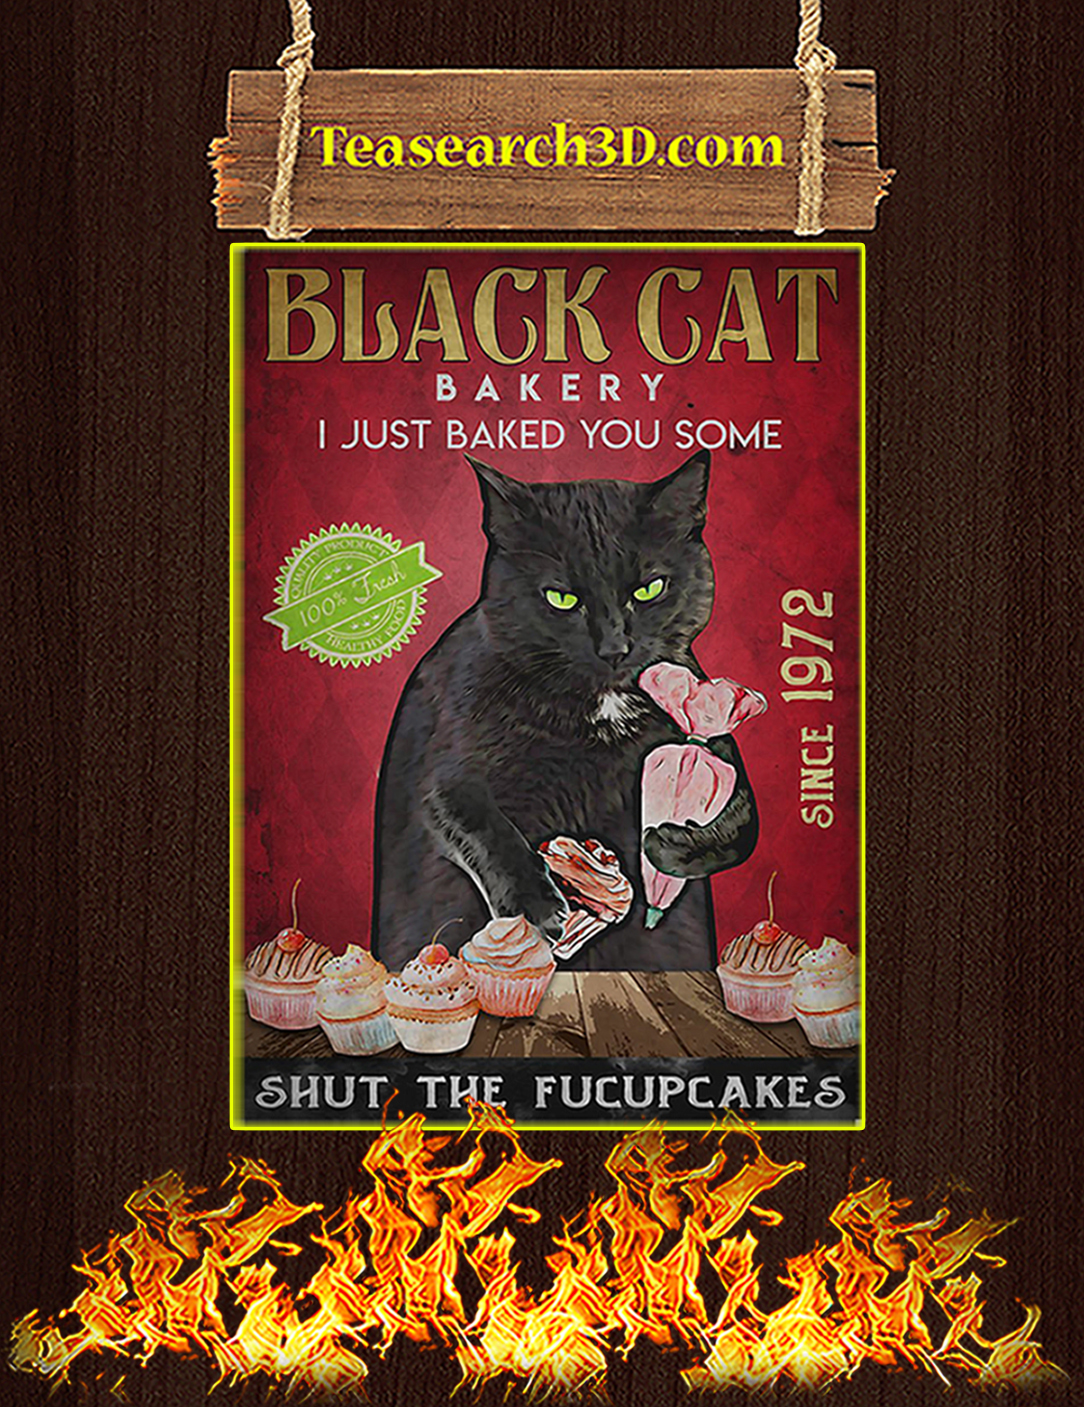 Black cat bakery I just baked you some poster A2